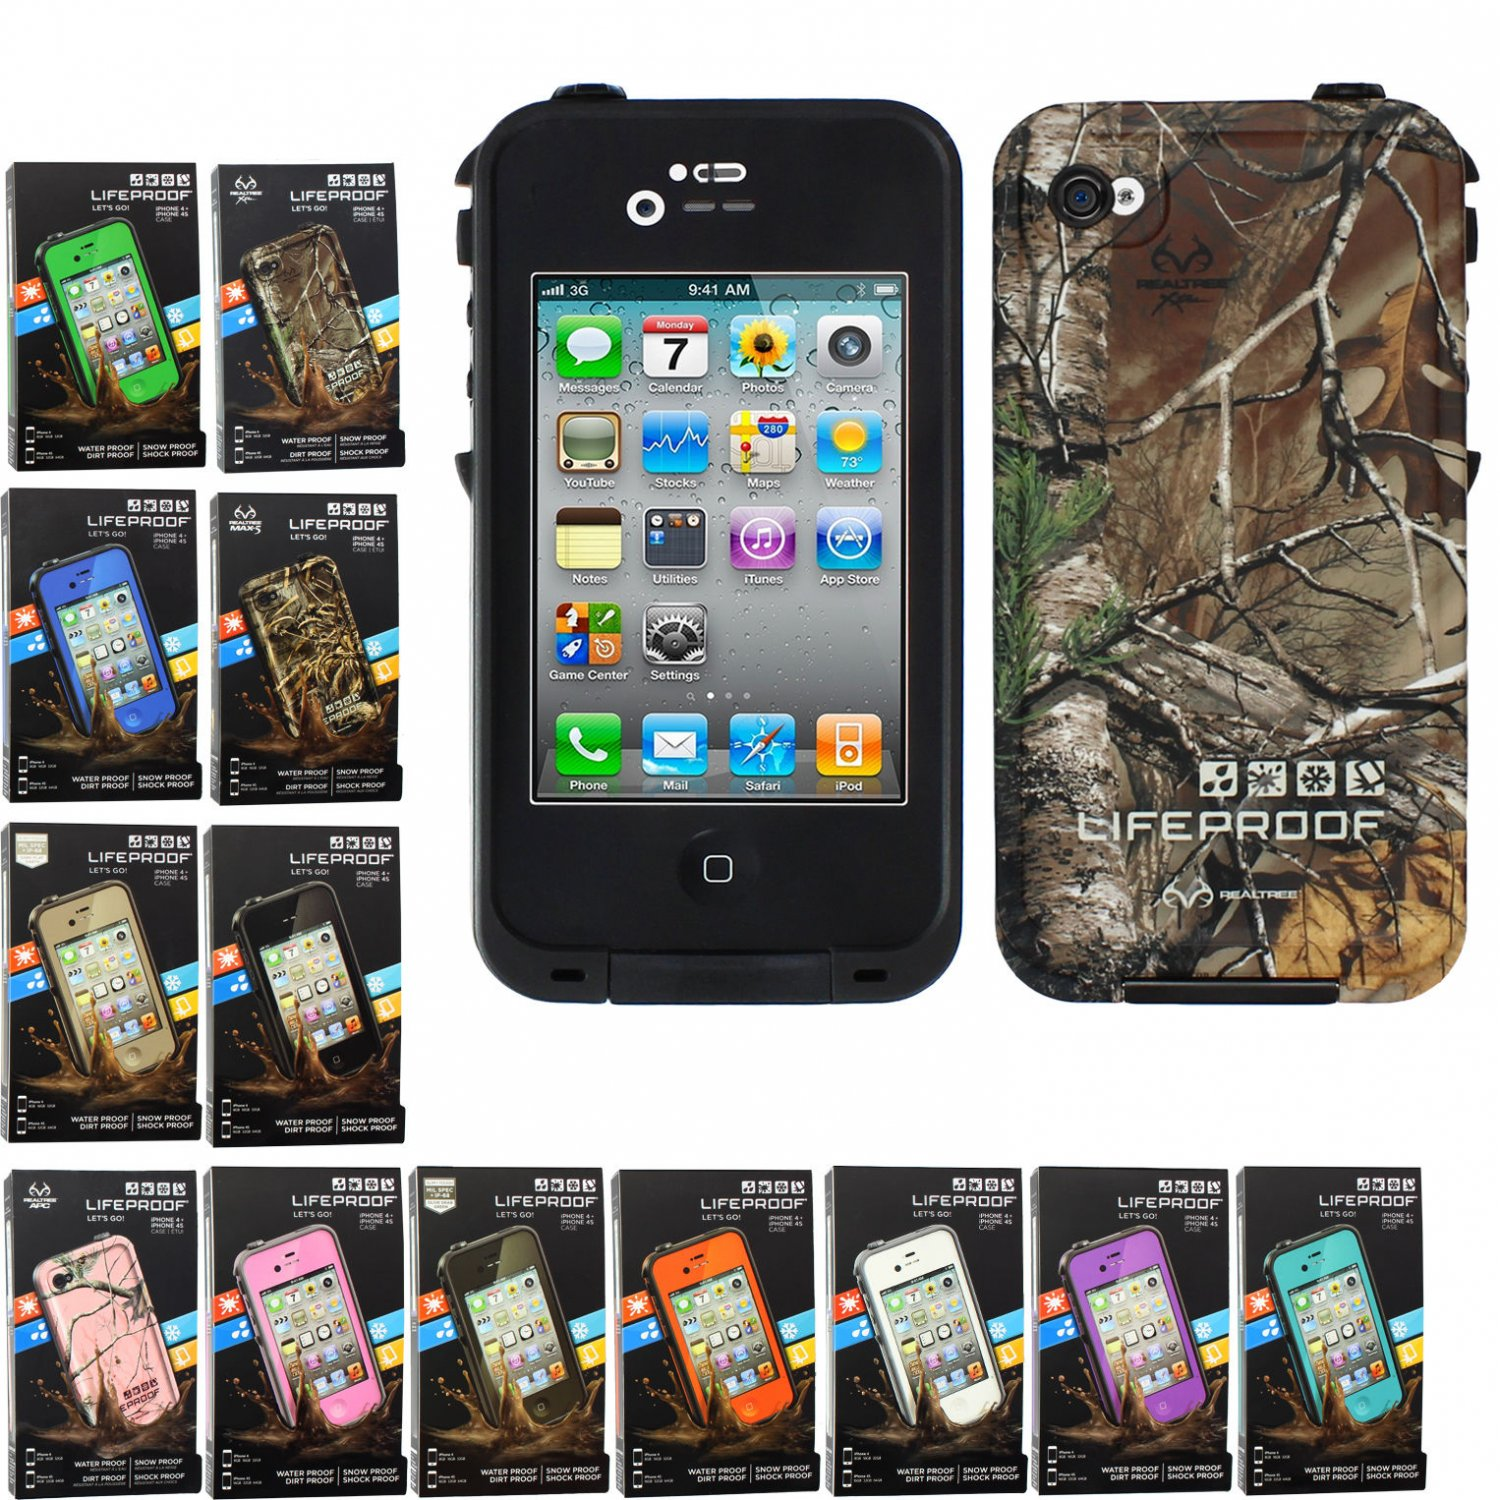 outlet store 01c5c 39edd NEW! Lifeproof fre Waterproof Case for iPhone 4S & iPhone 4 w Authentic  Serial